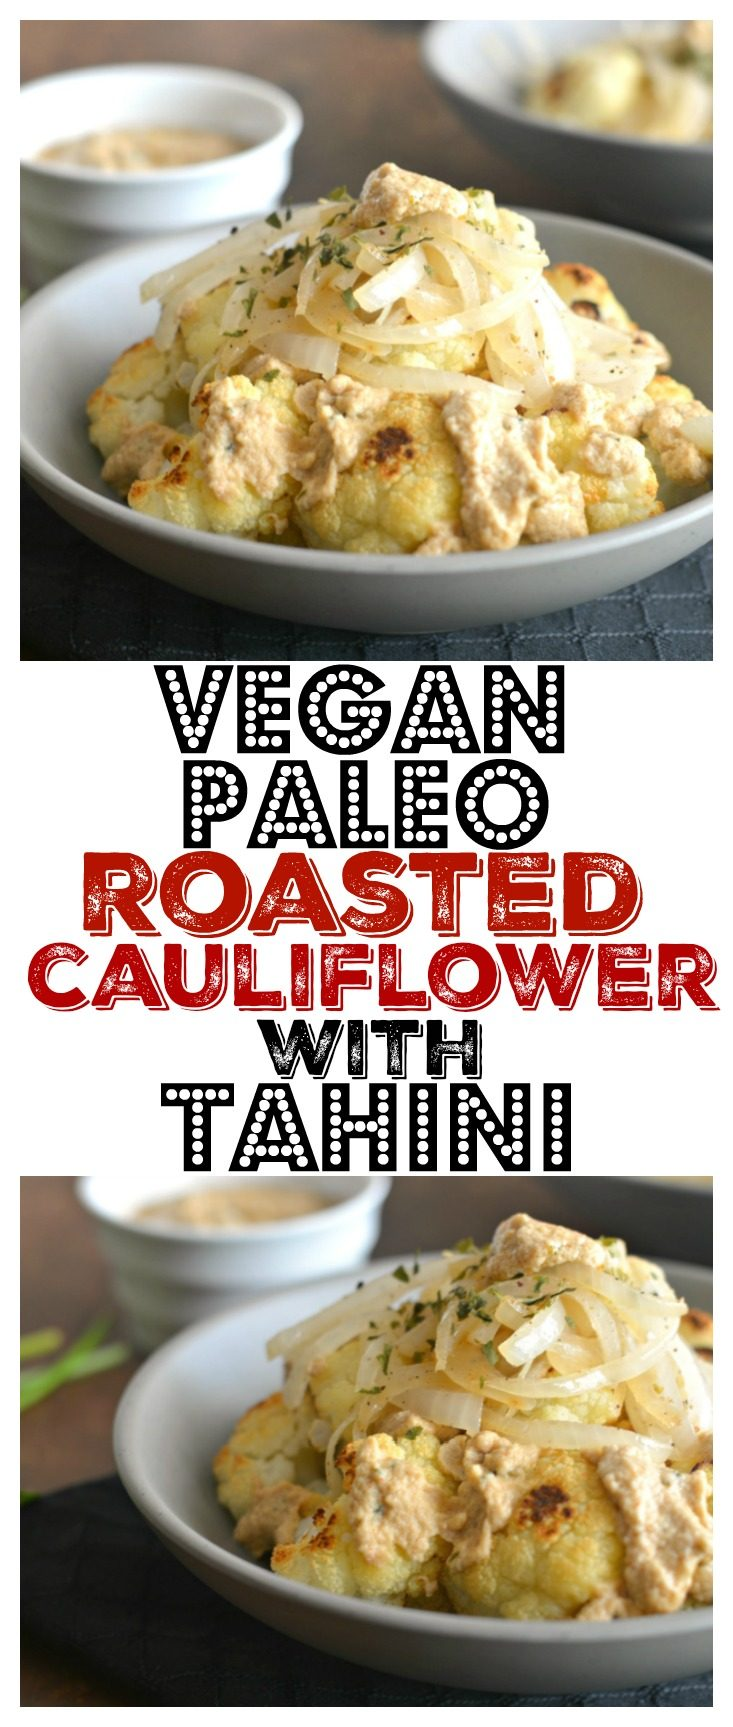 Golden roasted Caramelized Cauliflower with Tahini & fried onions. A delicious gluten free, Paleo, Vegan, low calorie dish that makes a tasty side or appetizer! Gluten Free, Paleo, Vegan, Low Calorie